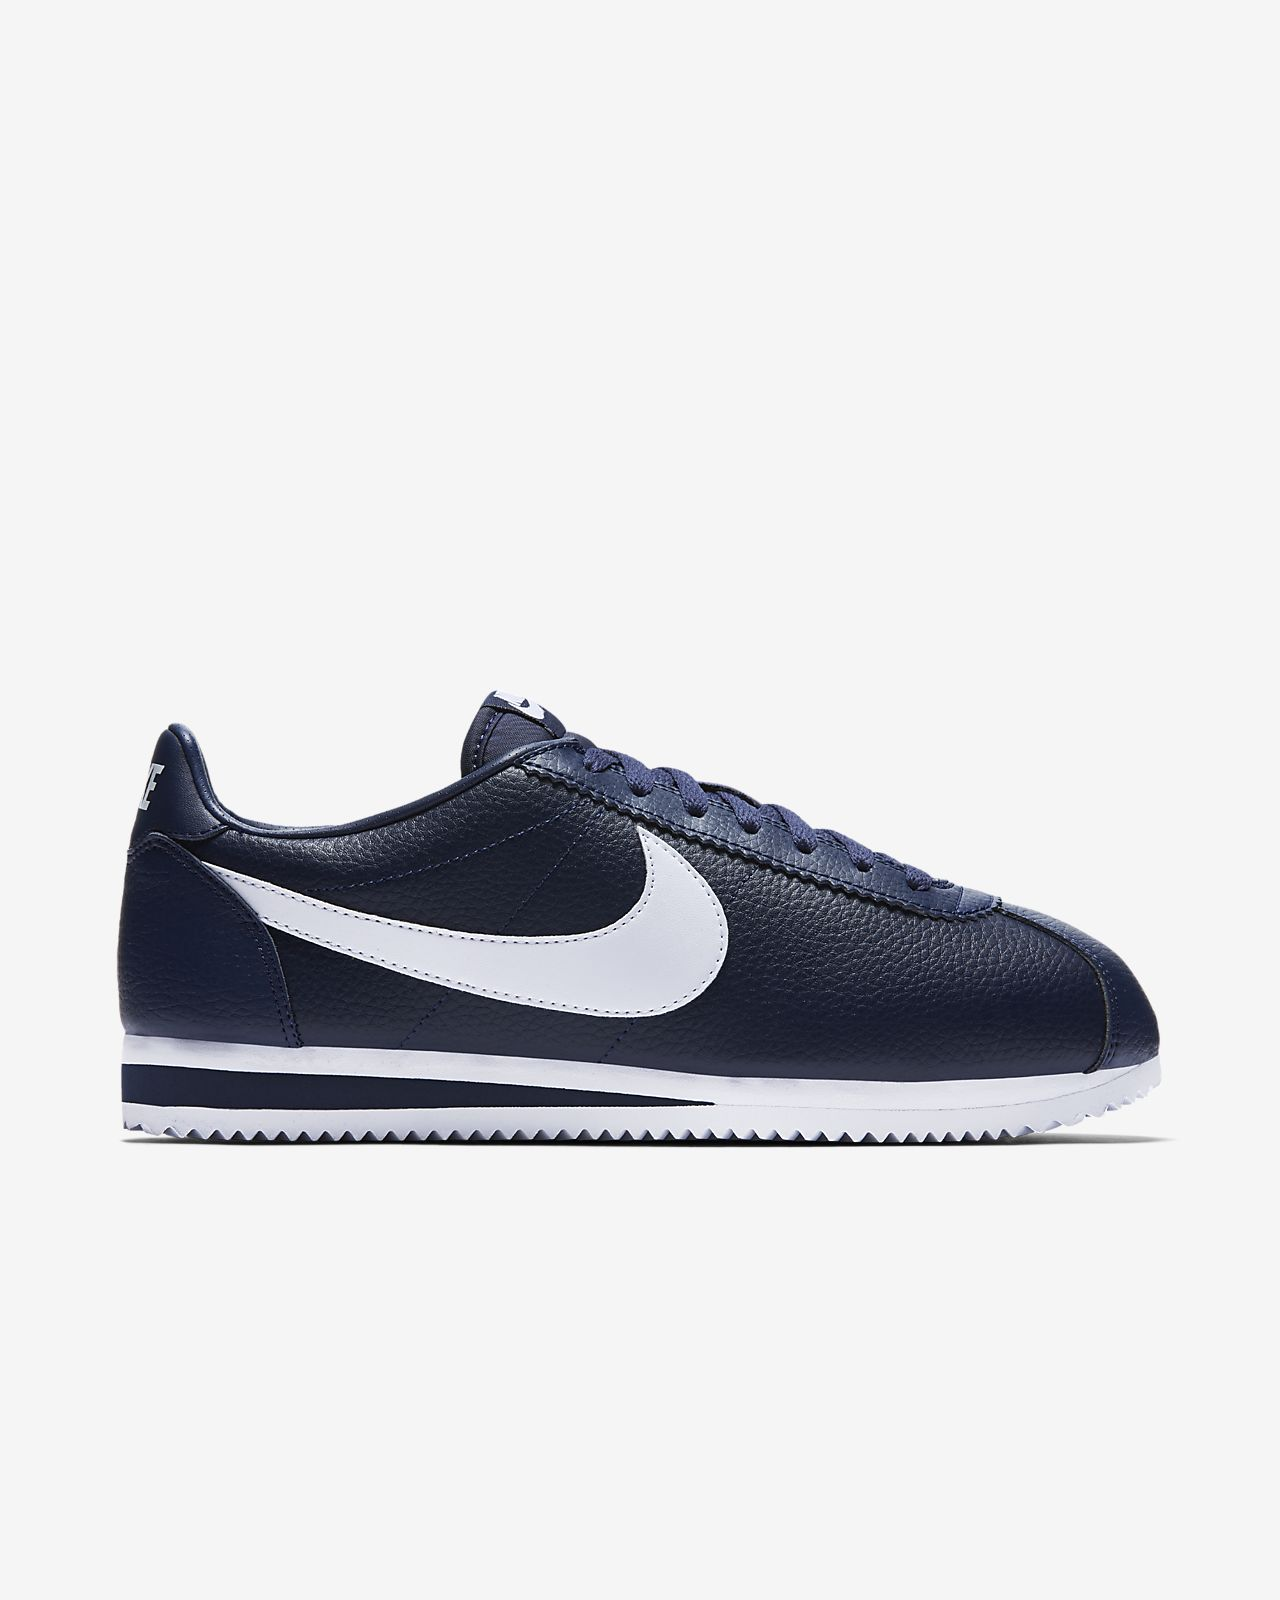 ORIGINALI NIKE CLASSIC CORTEZ LEATHER MIDNIGHT NAVY WHITE Sneaker UNISEX